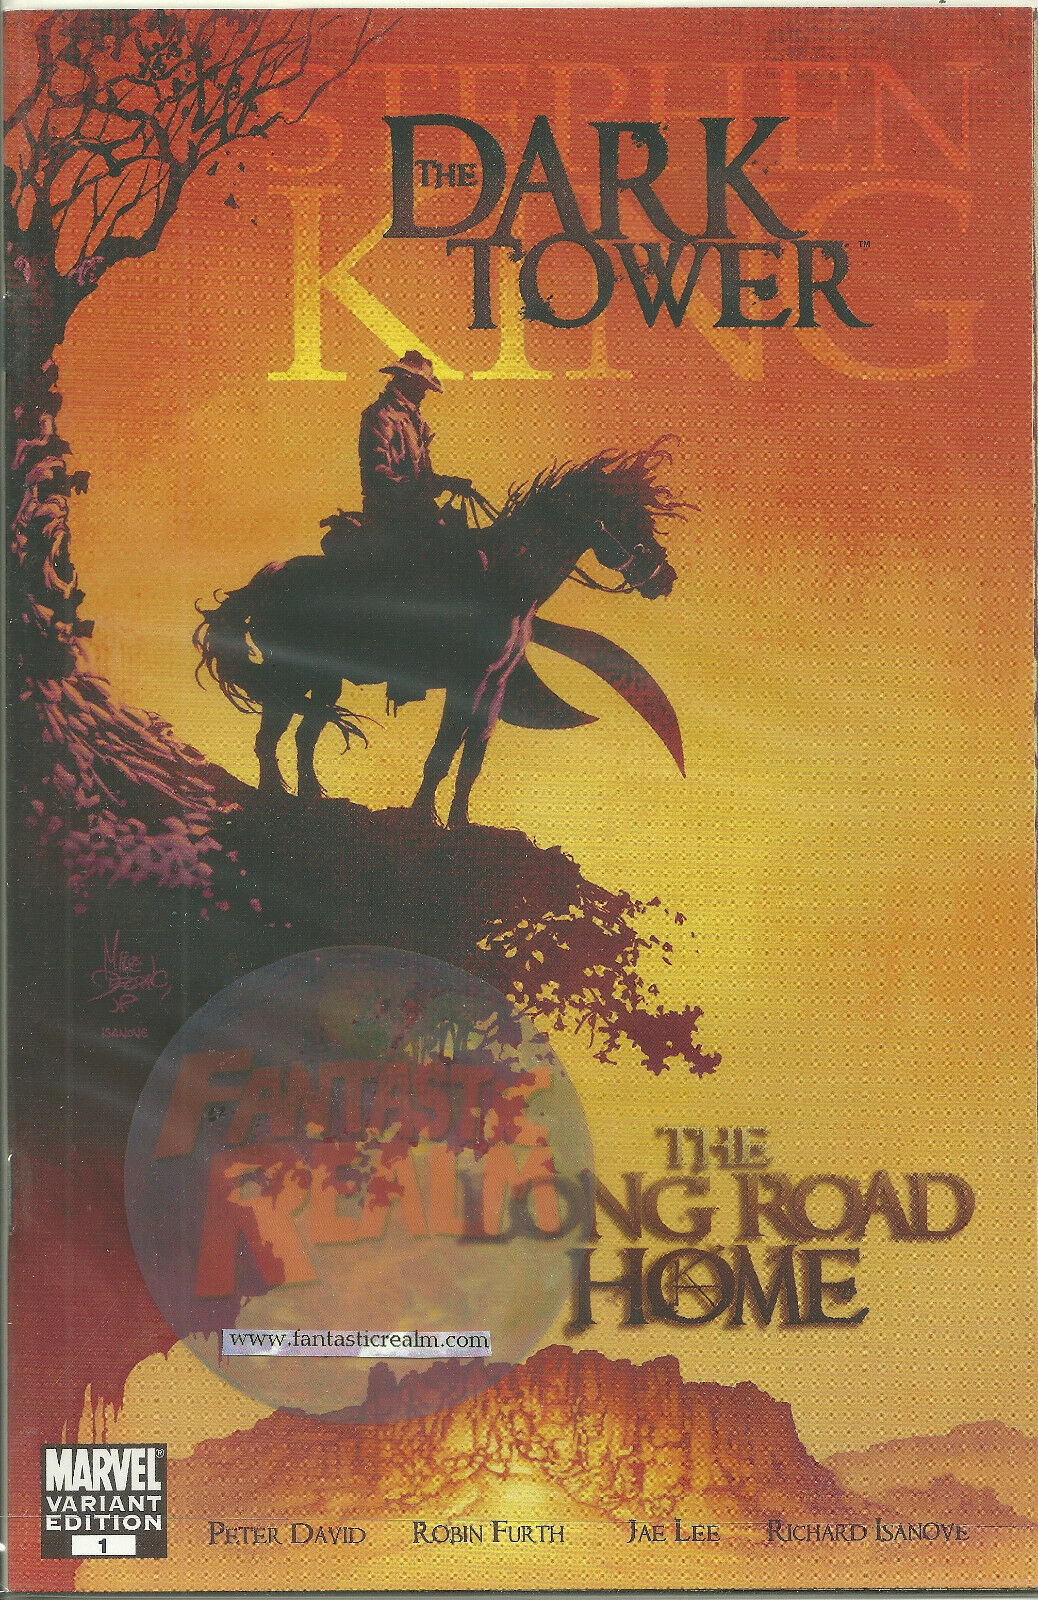 The Dark Tower: THE LONG ROAD HOME #1 (2007) VARIANT Stephen King